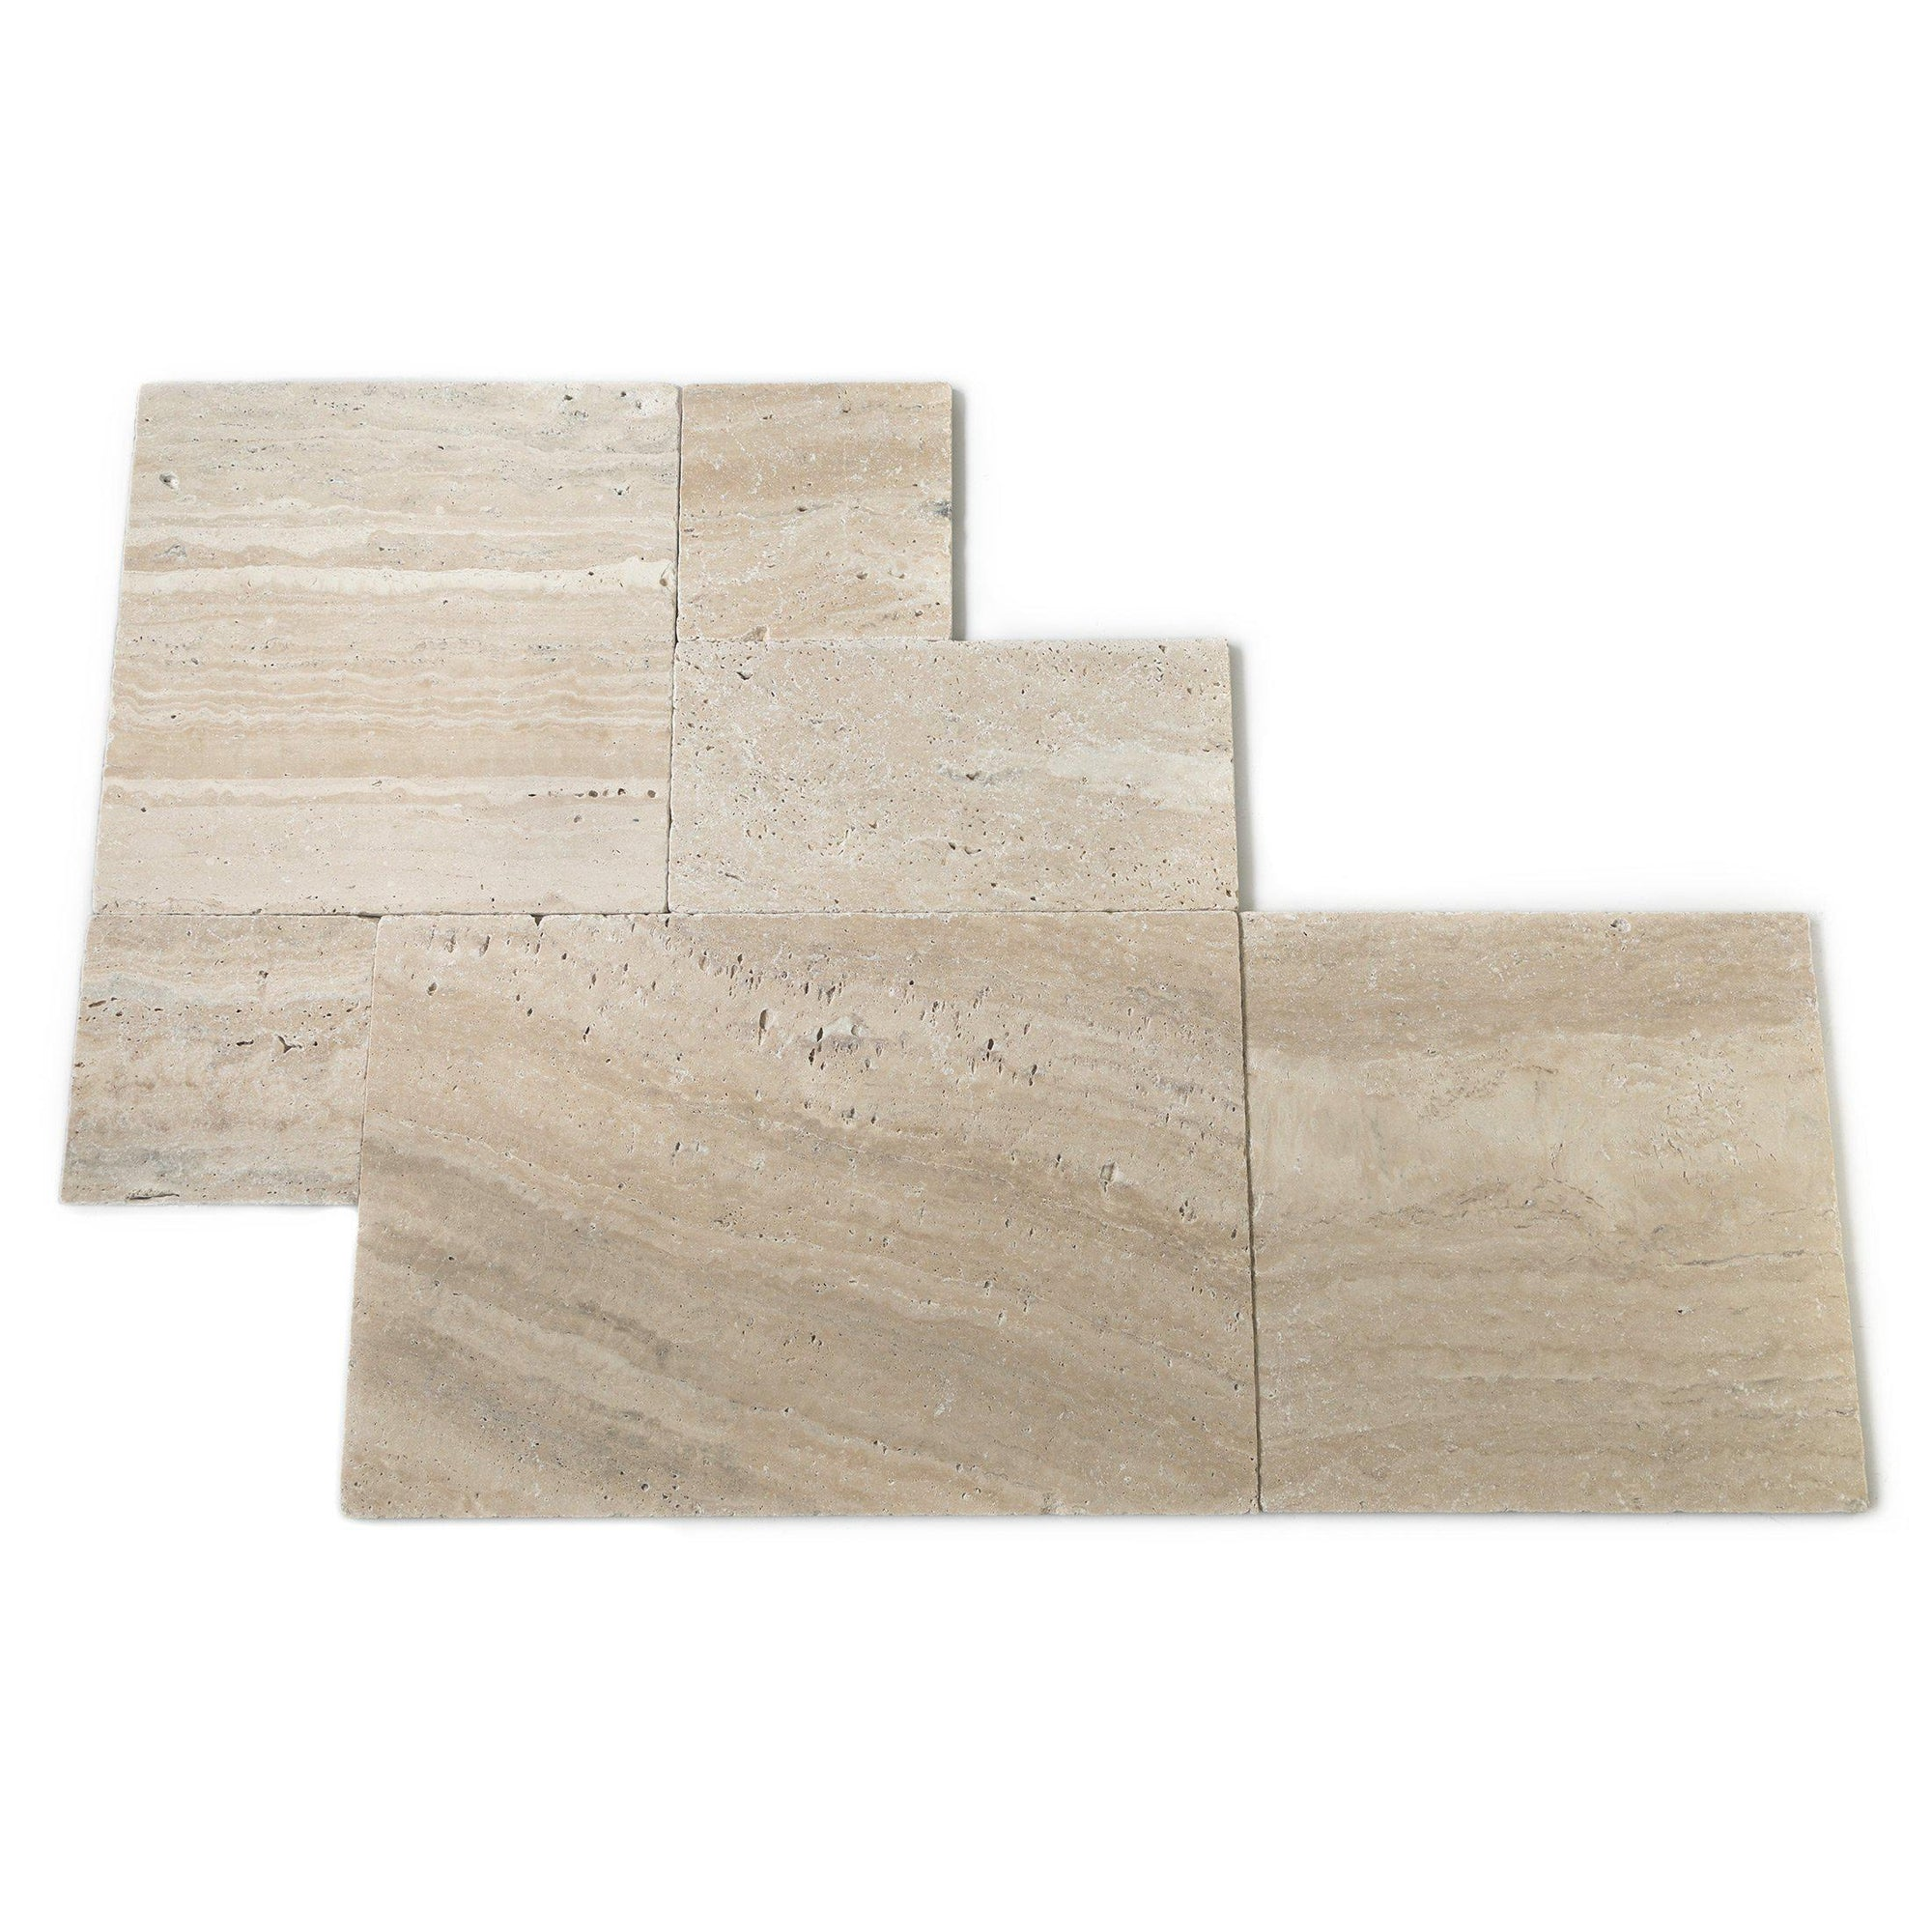 Philadelphia French Set Travertine Tile